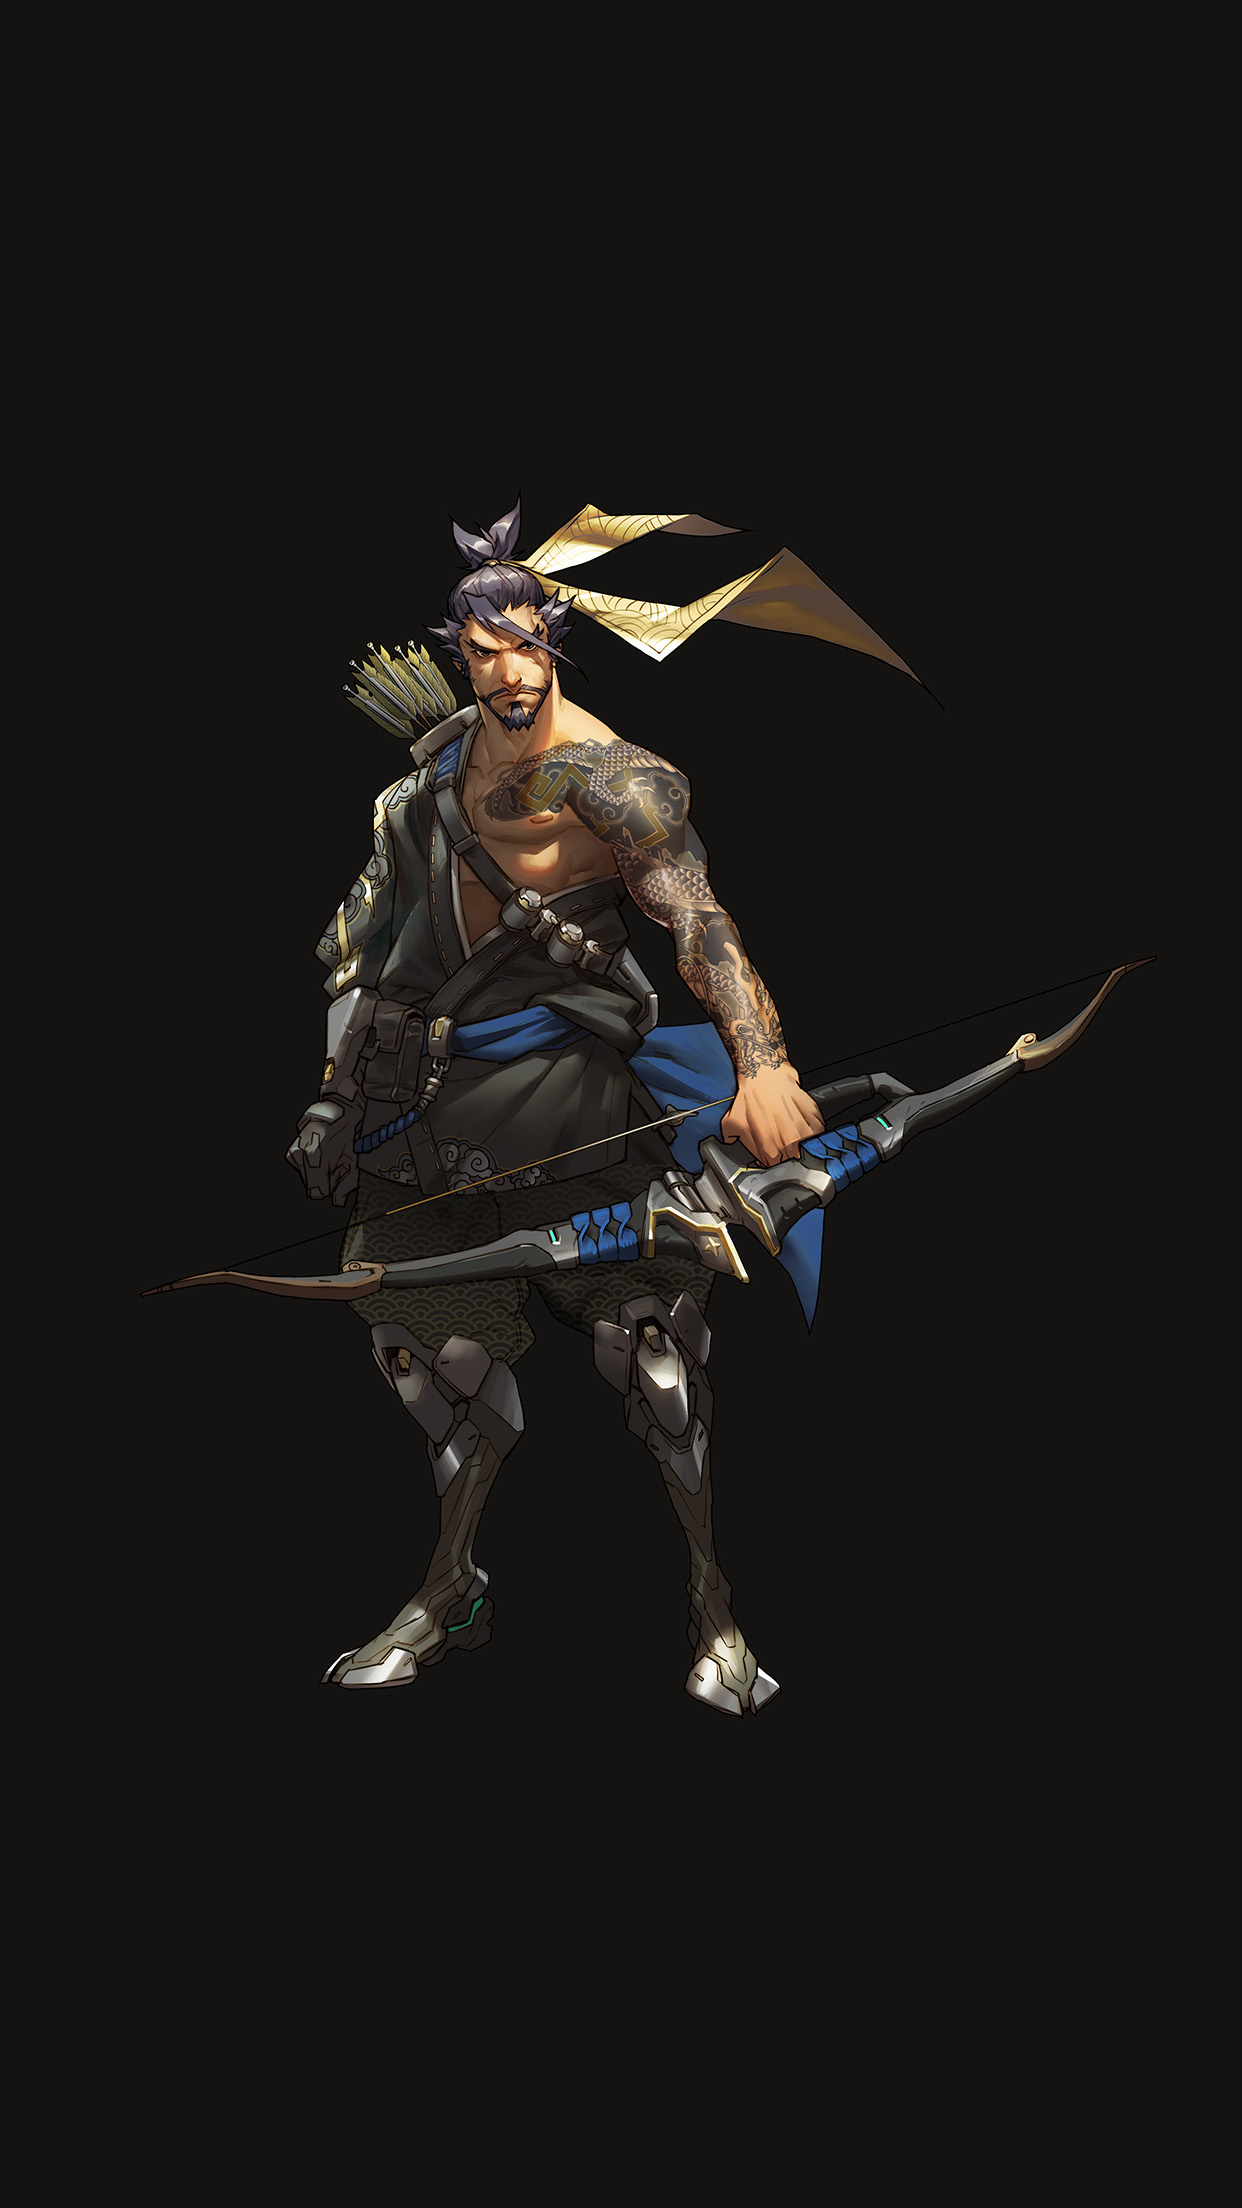 iphone7papers | iphone7 wallpaper | as32-overwatch-hanzo-dark